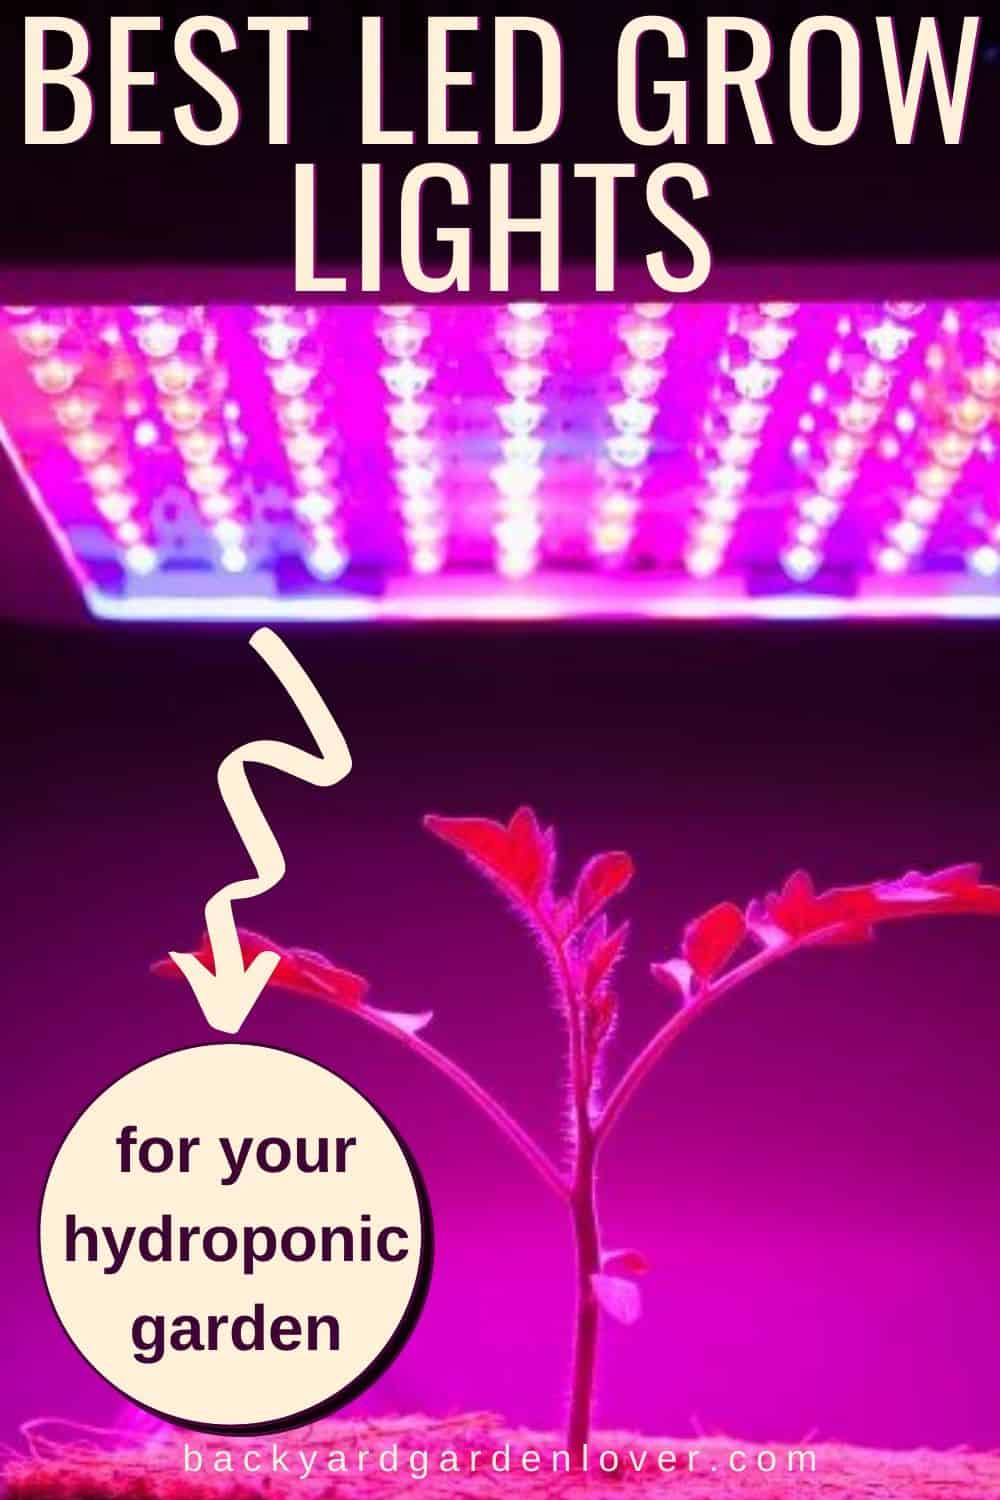 Best LED grow lights for your hydroponic garden